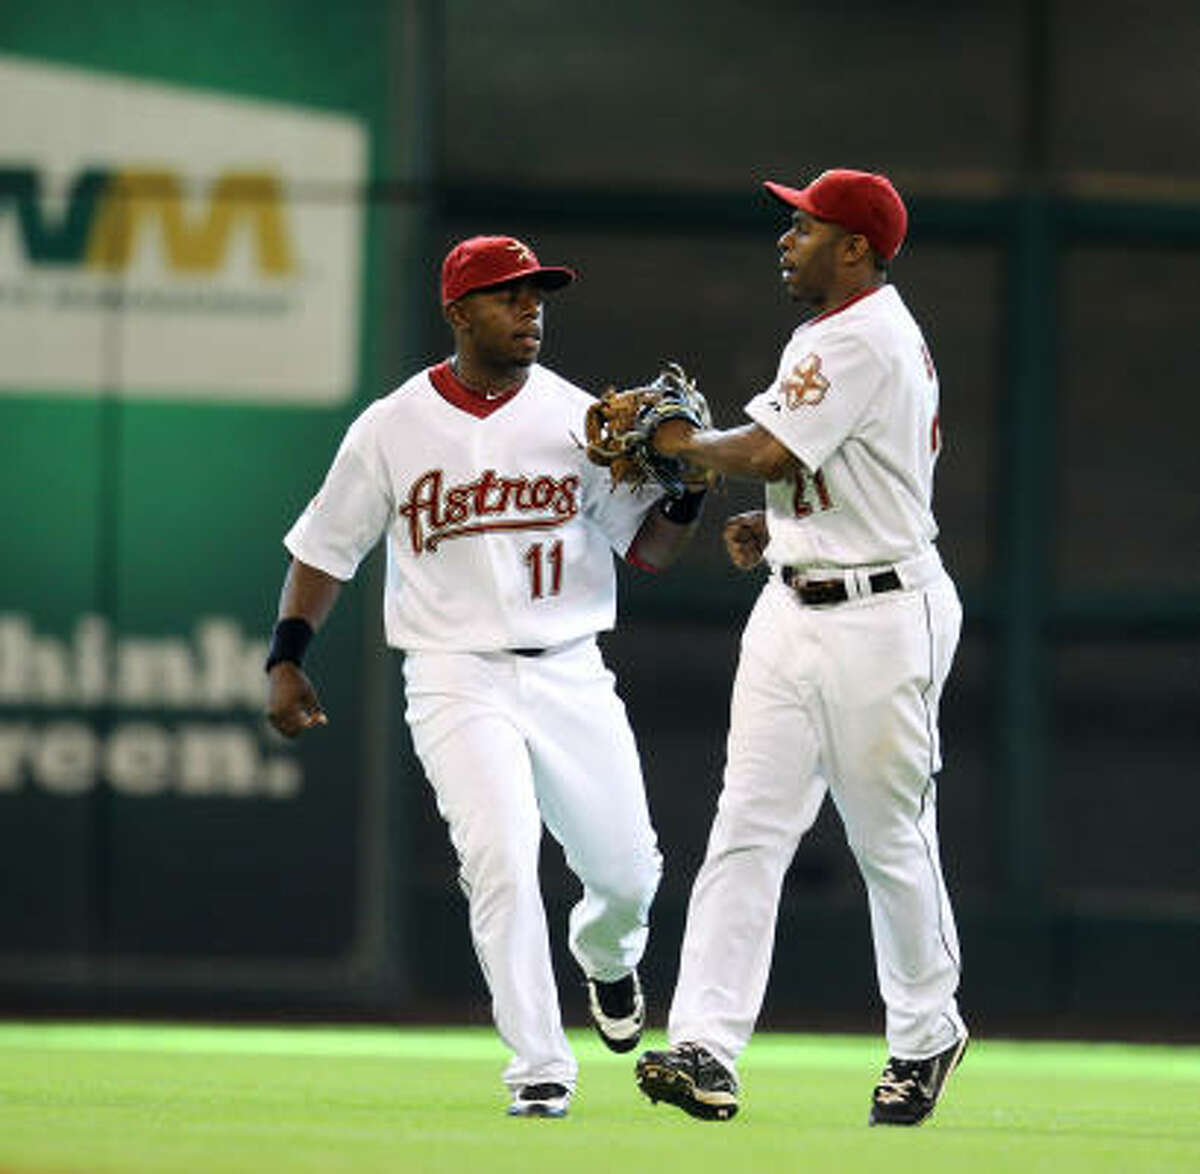 Players like Astros outfielder Jason Bourgeois, left, gained extra experience through the program. Houston RBI also lists Carl Crawford, Chris Young, James Loney and Michael Bourn as alumni.